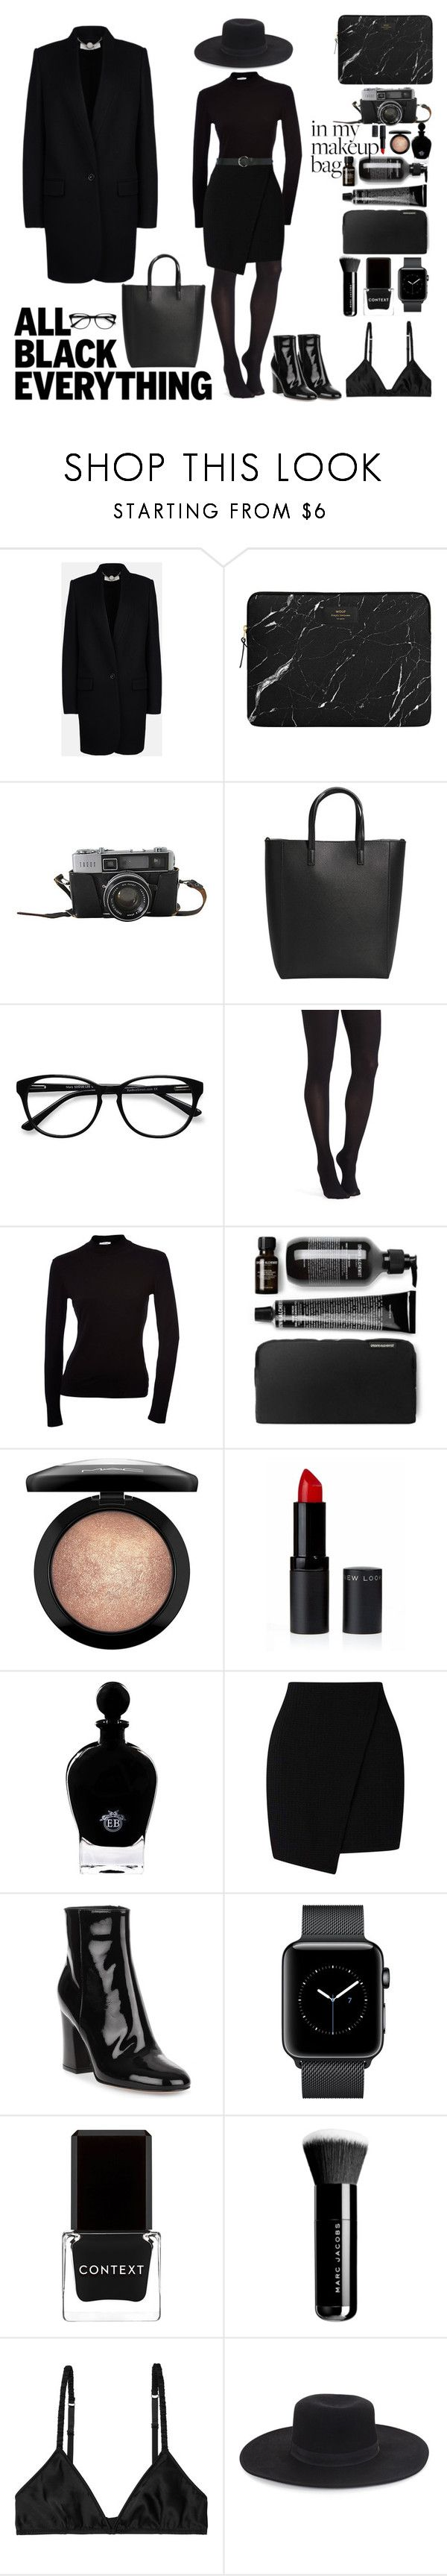 """""""simplicity"""" by deadbeat-horn on Polyvore featuring STELLA McCARTNEY, MANGO, EyeBuyDirect.com, Commando, MAC Cosmetics, EB Florals, Miss Selfridge, Gianvito Rossi, Context and Marc Jacobs"""